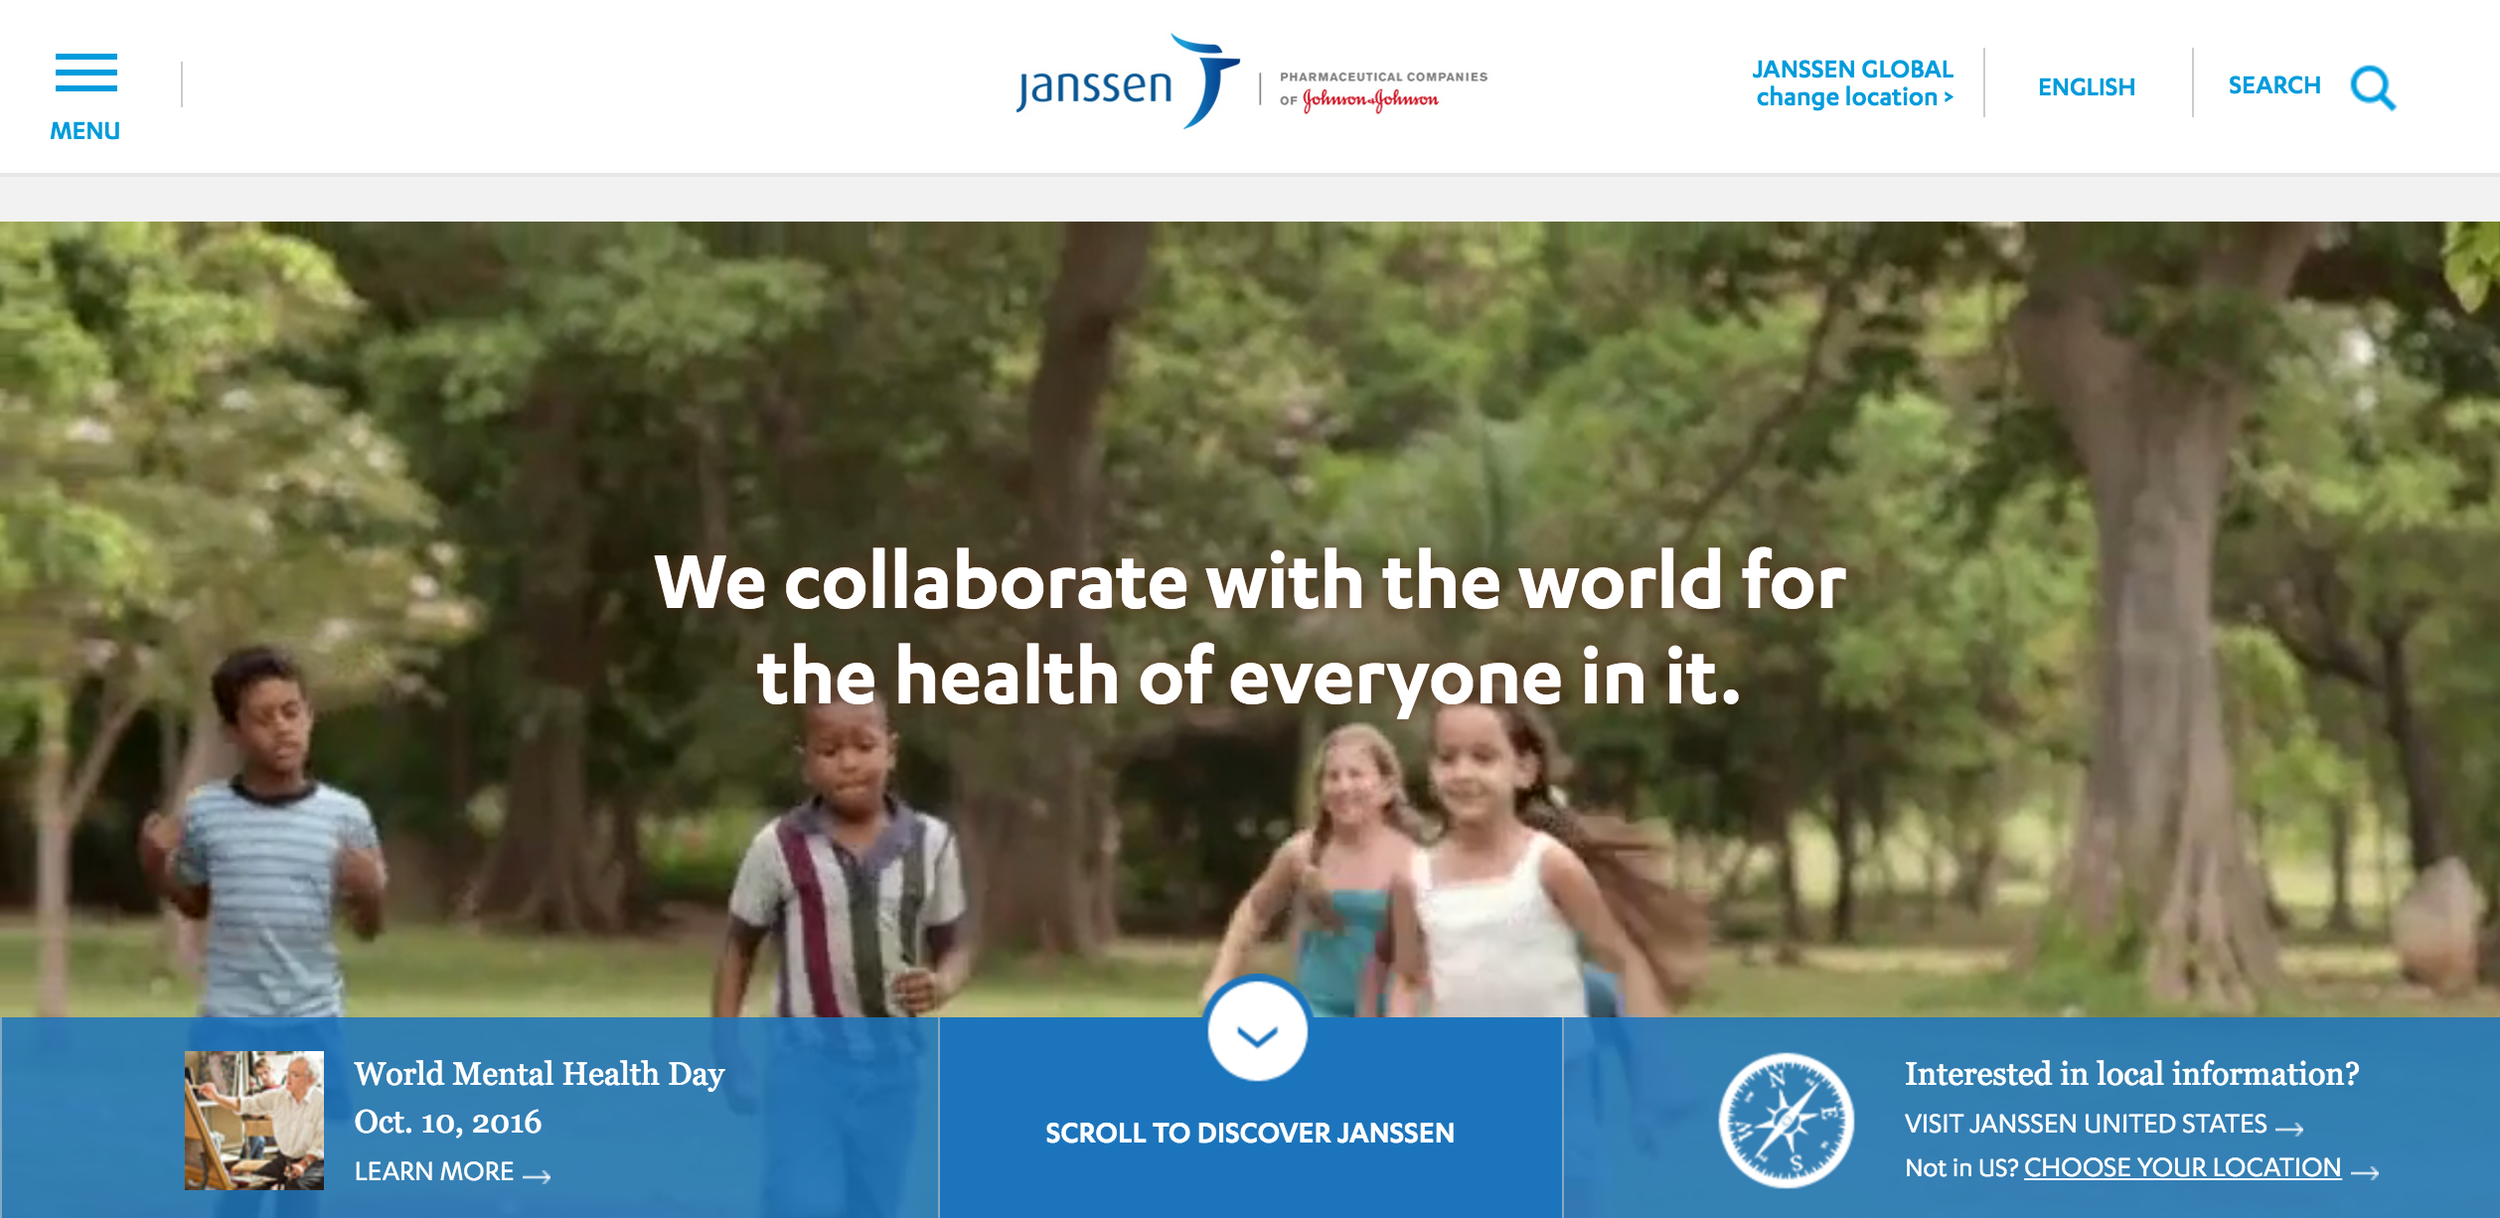 I was the head Digital Strategist on the Janssen team to manage their corporate website including content,new website features and partner communications.